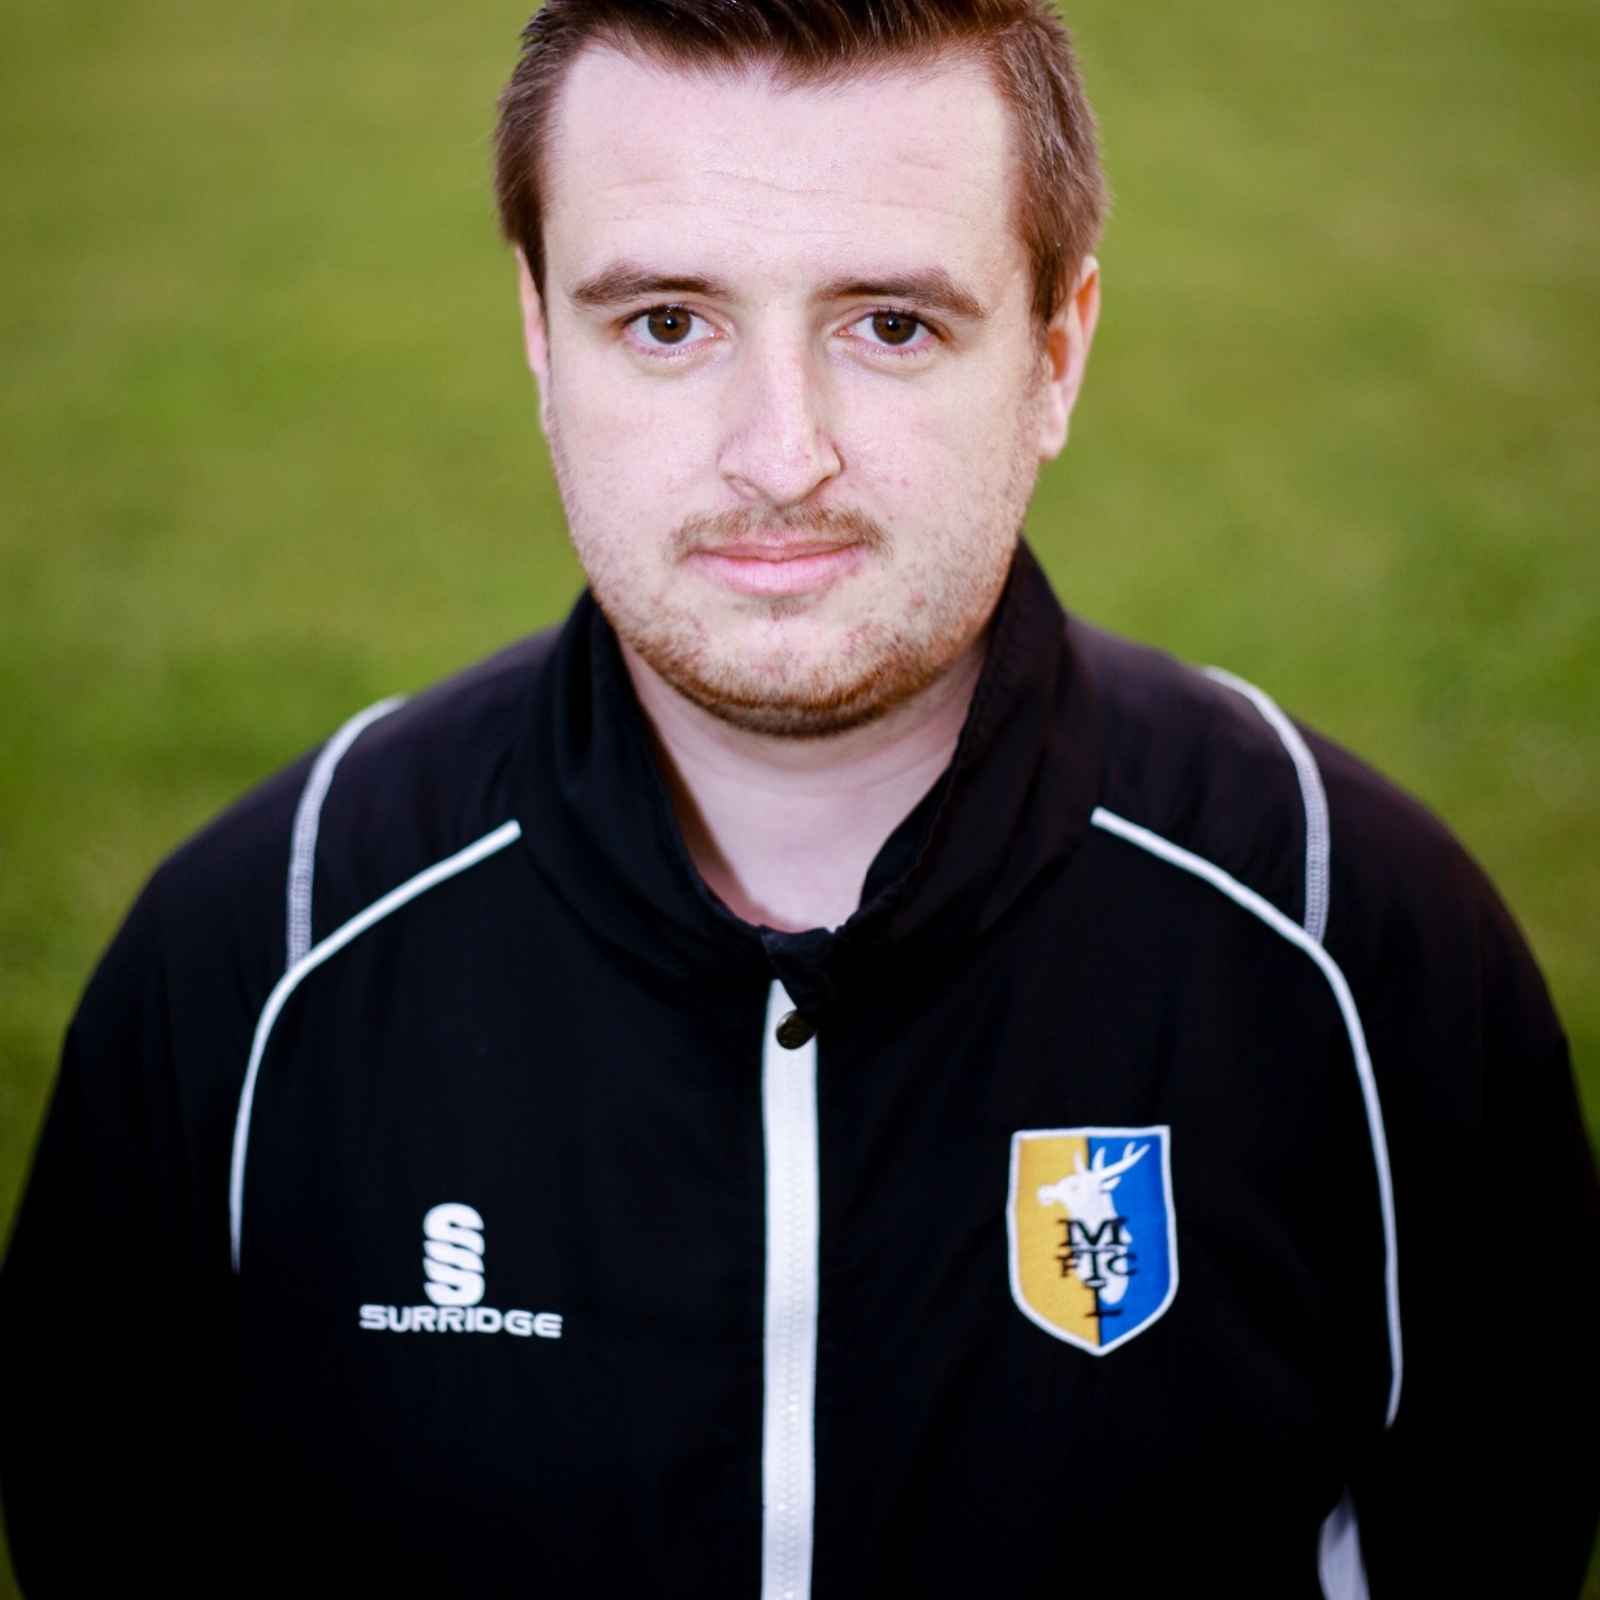 Manager Lewis Saxby departs the club